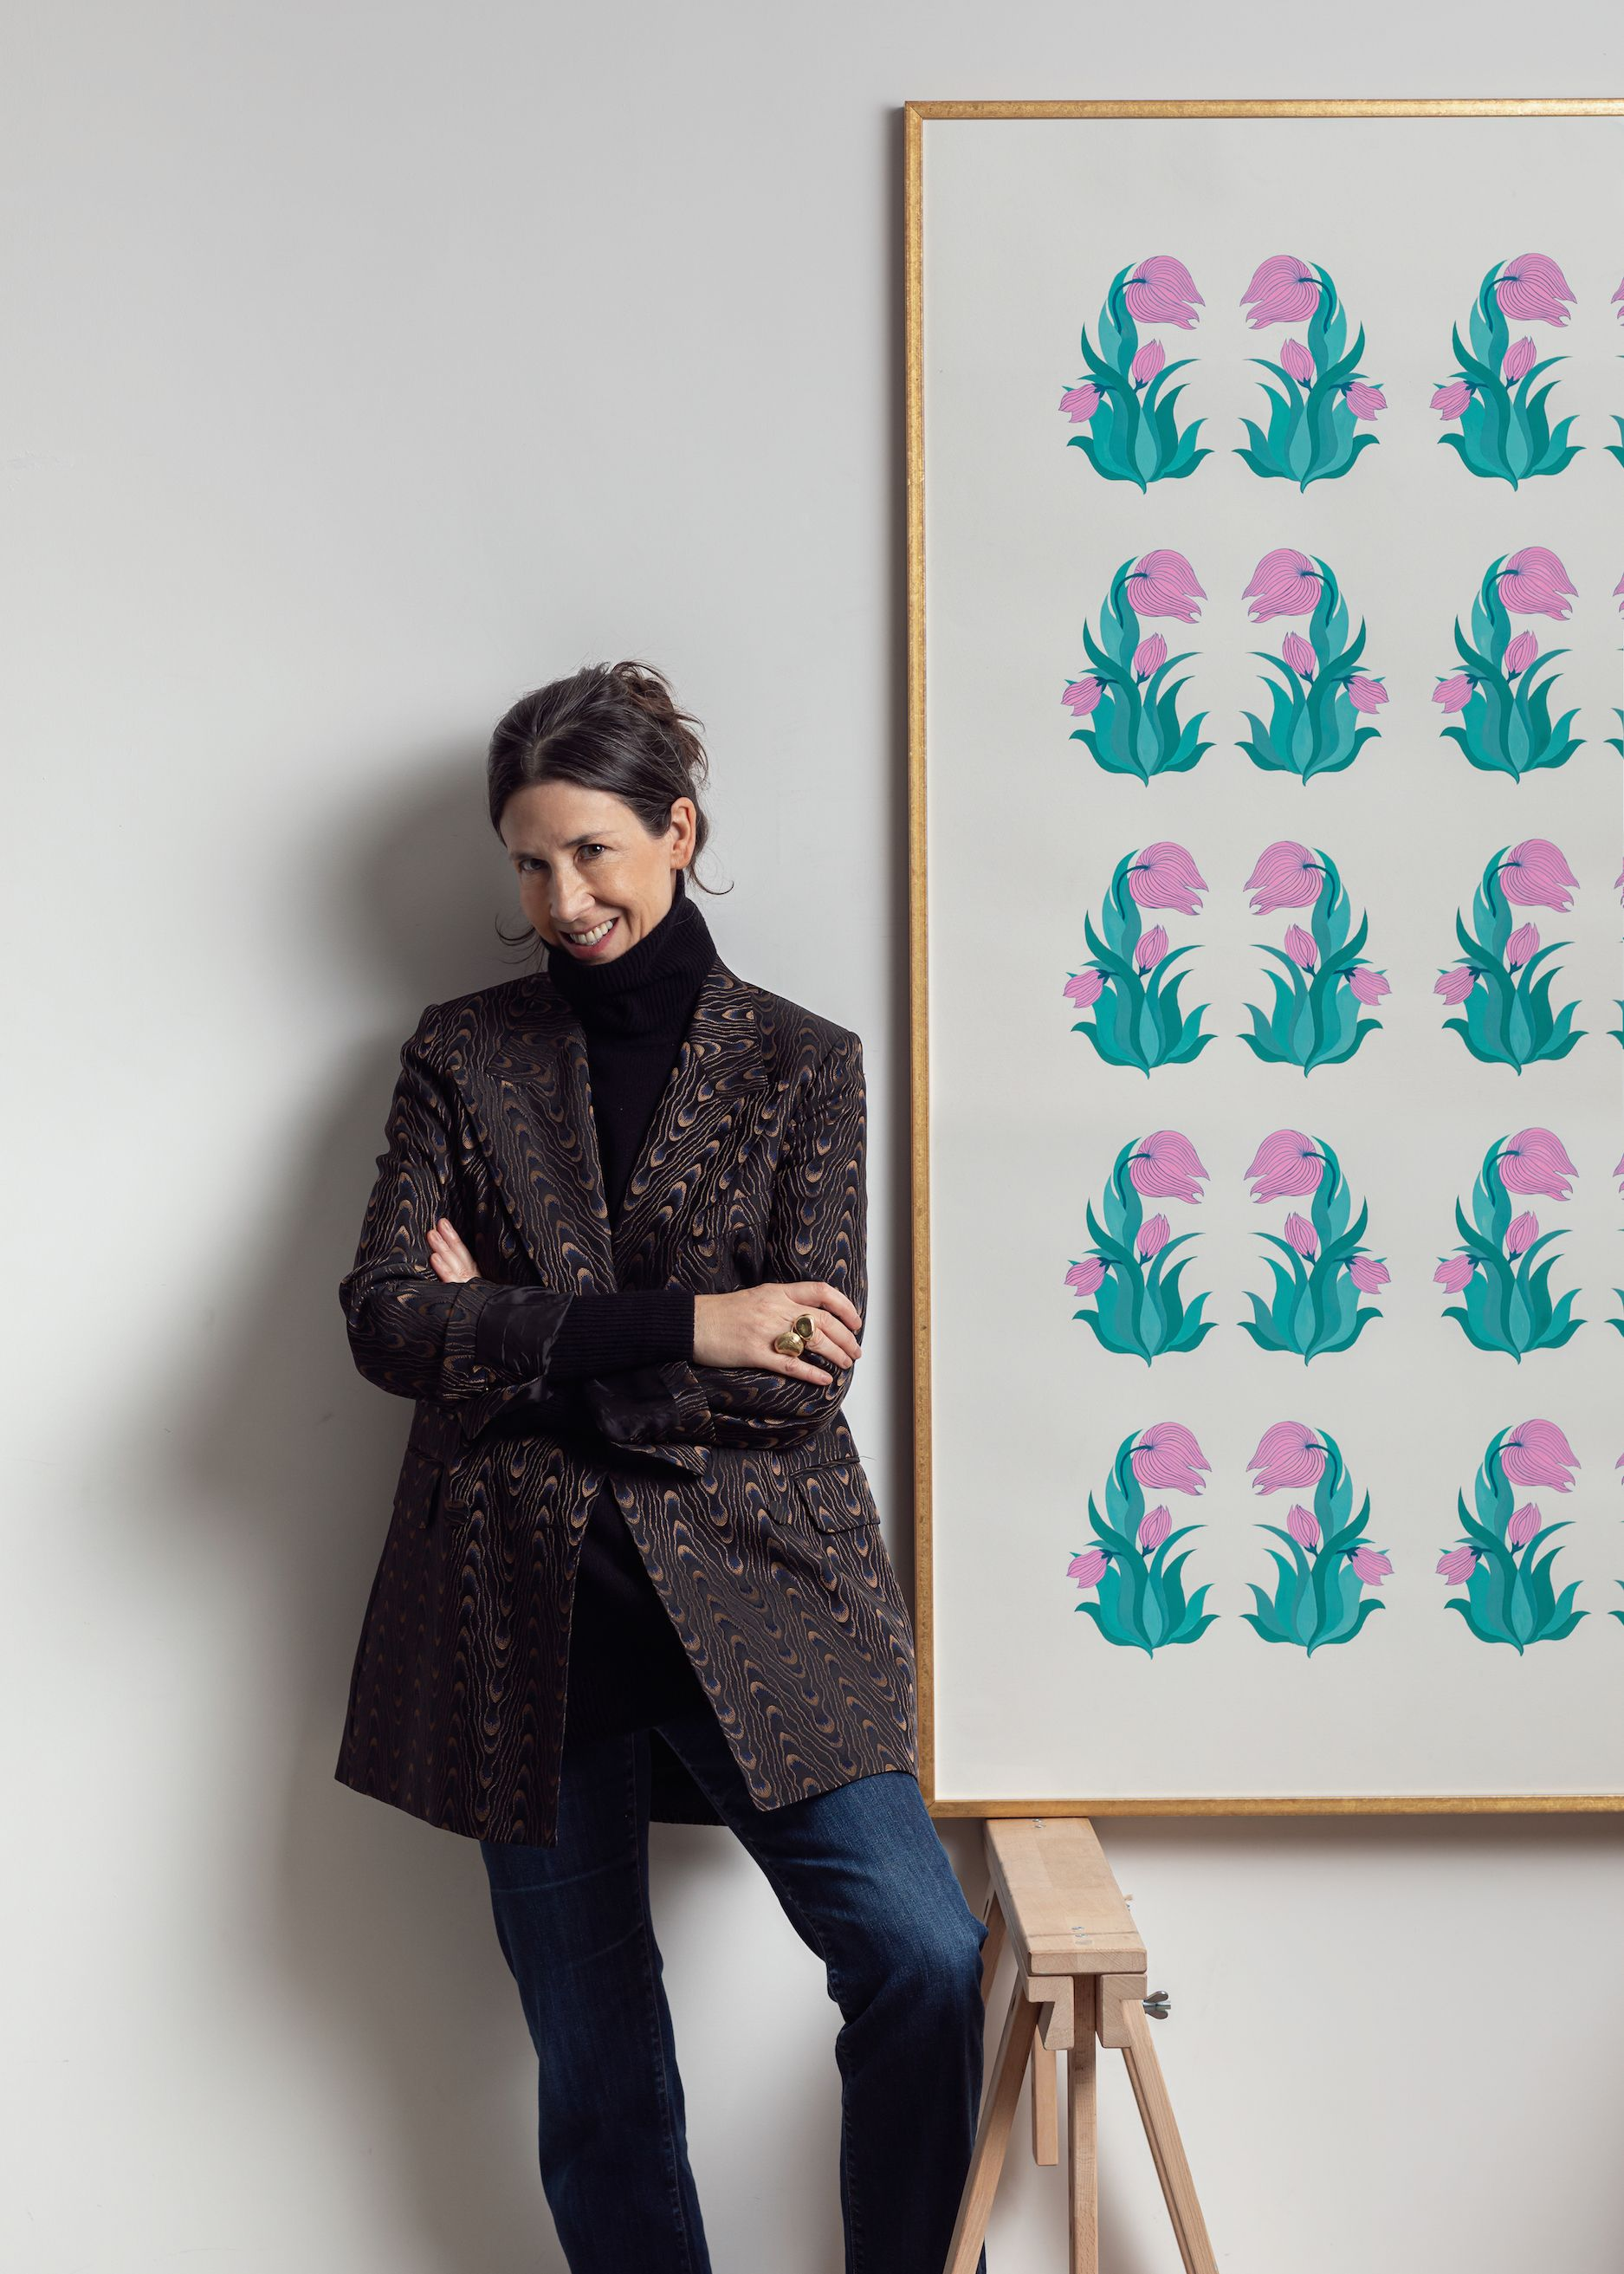 British designer Neisha Crosland's debut artworks go on show